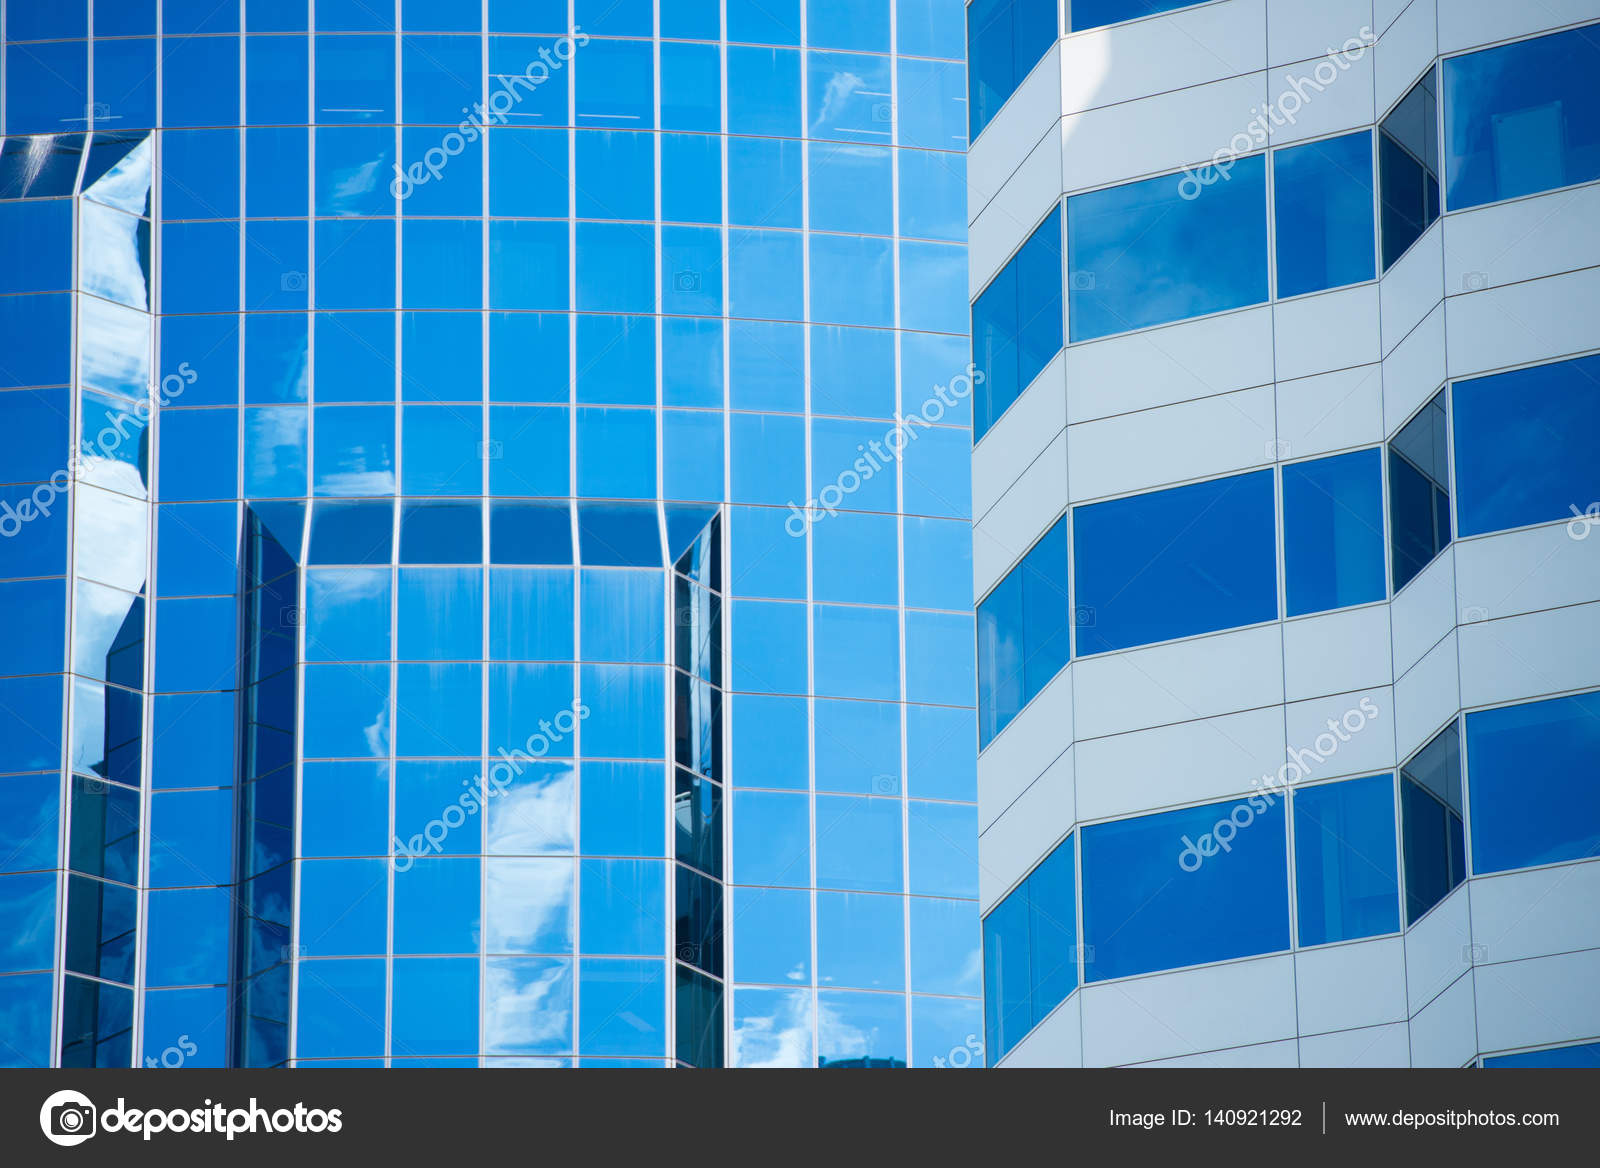 glass facade design office building. Conceptual Image Of Textured Facade Modern Design Skyscraper Office Buildings In Downtown Business District, Reflection Window Surface Pattern Glass Building W